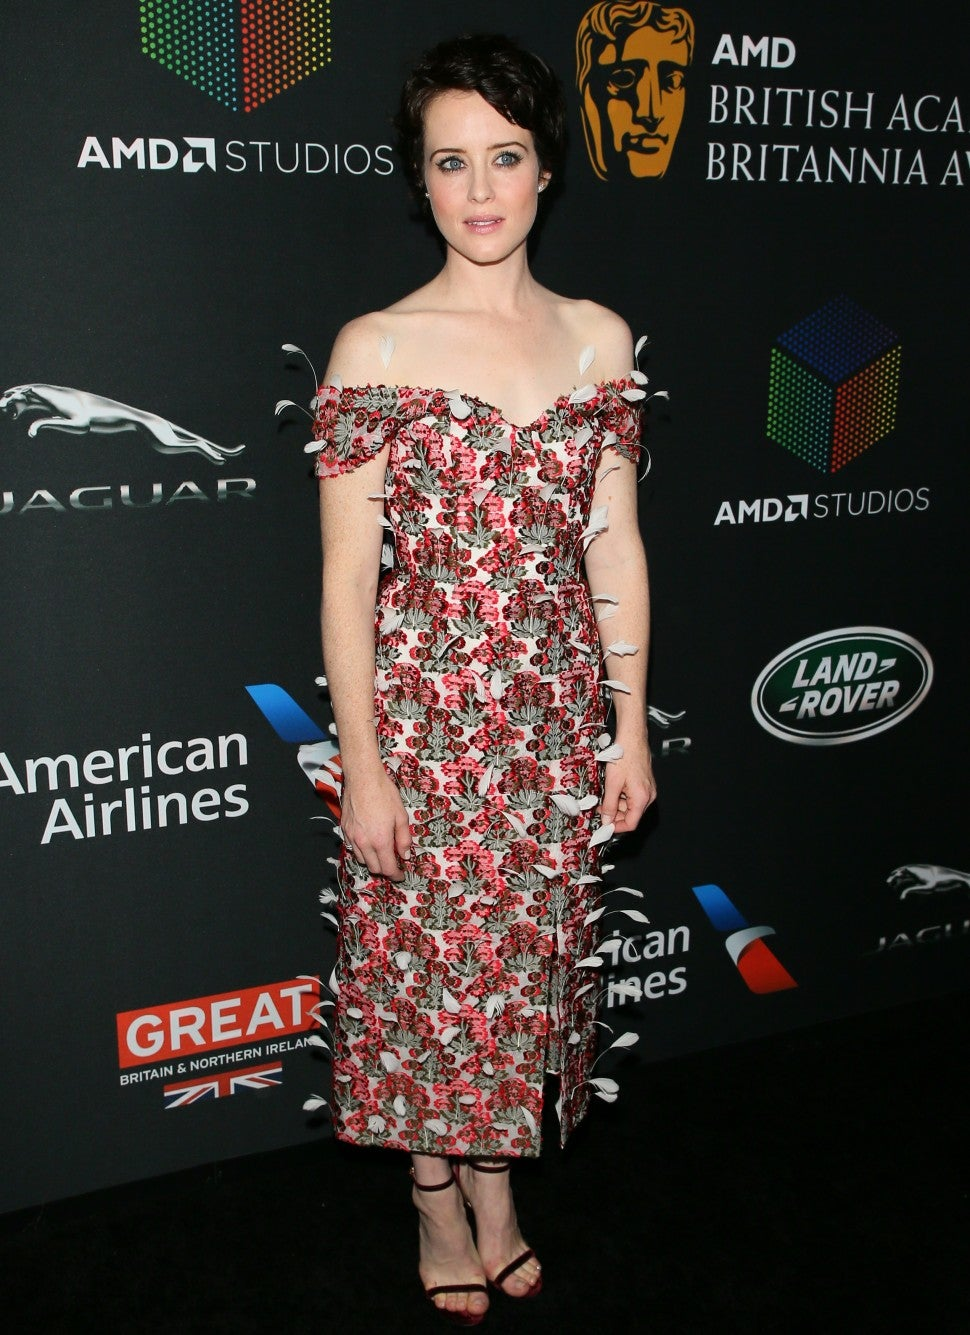 claire_foy_GettyImages-867359142